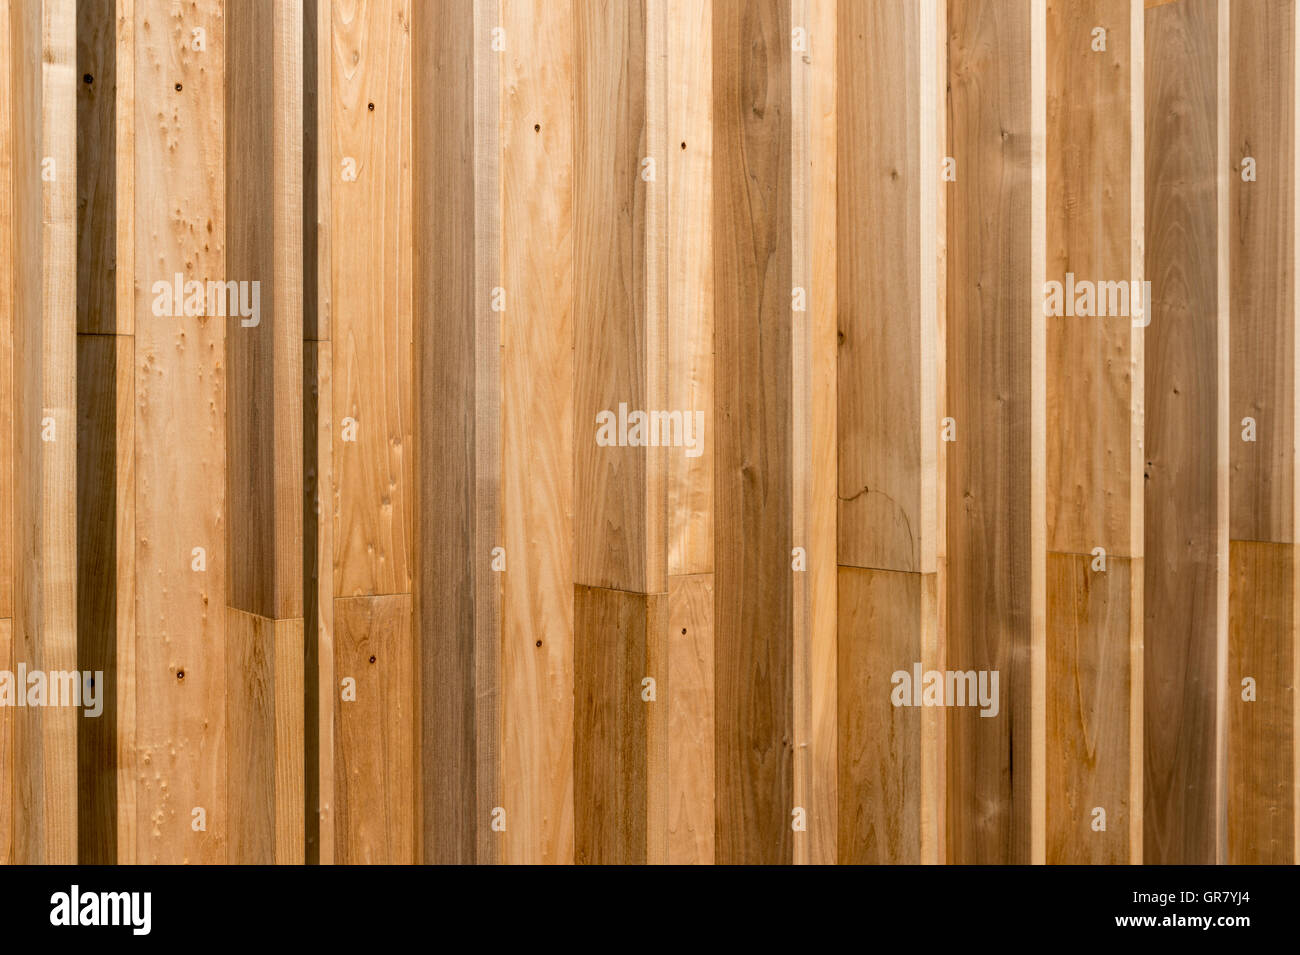 House Wall Made Of Poplar Wood In The Sunshine Stock Photo